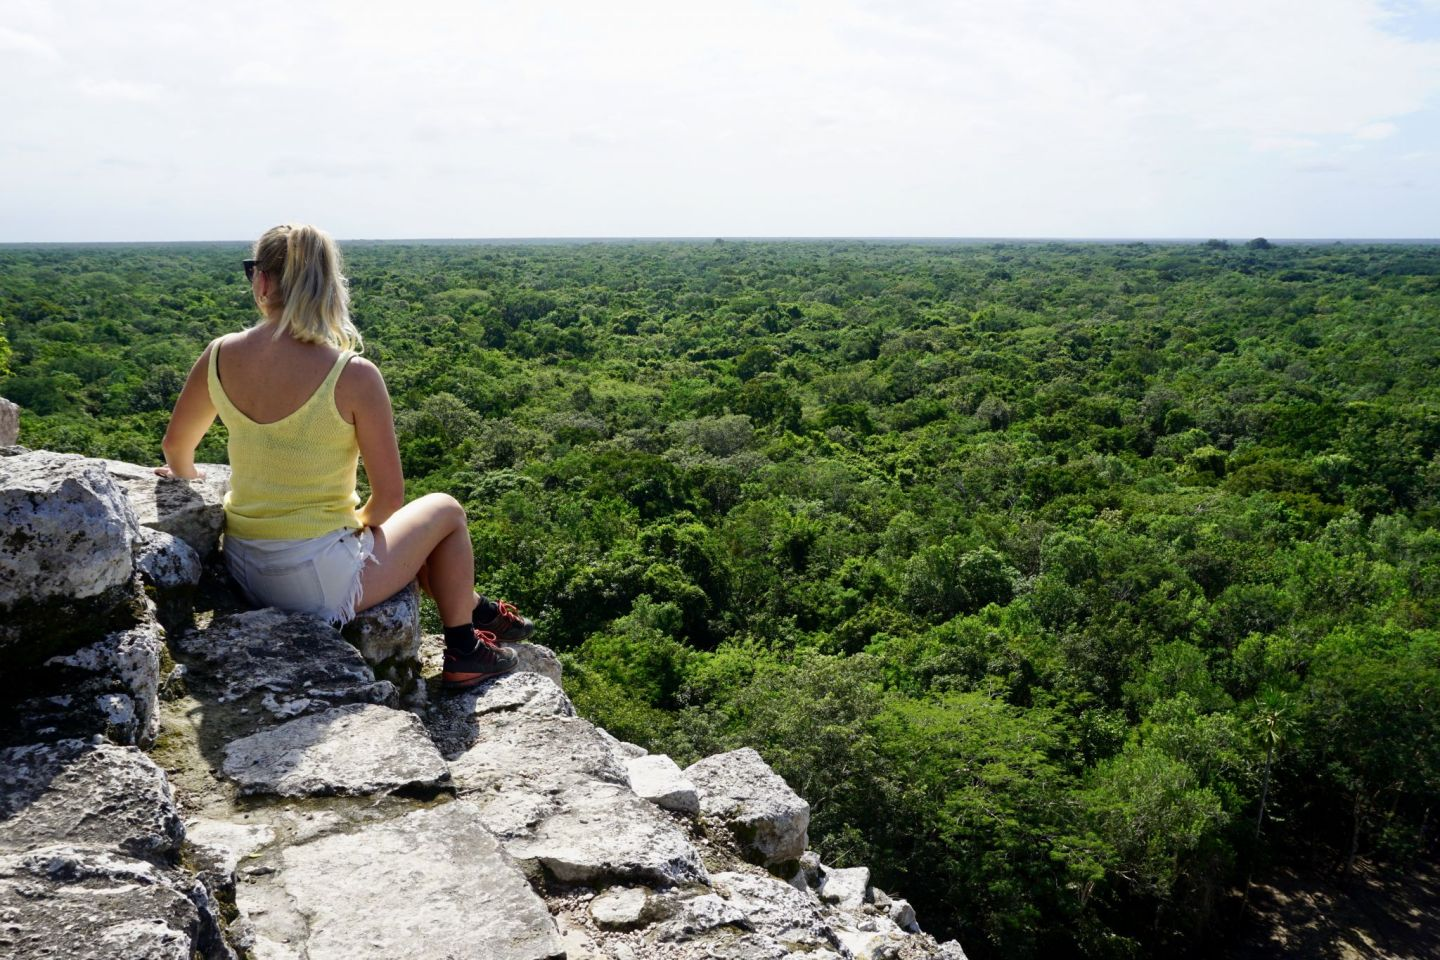 Allow time to admire the views once you've climbed the Mayan pyramid Nohoch Mul